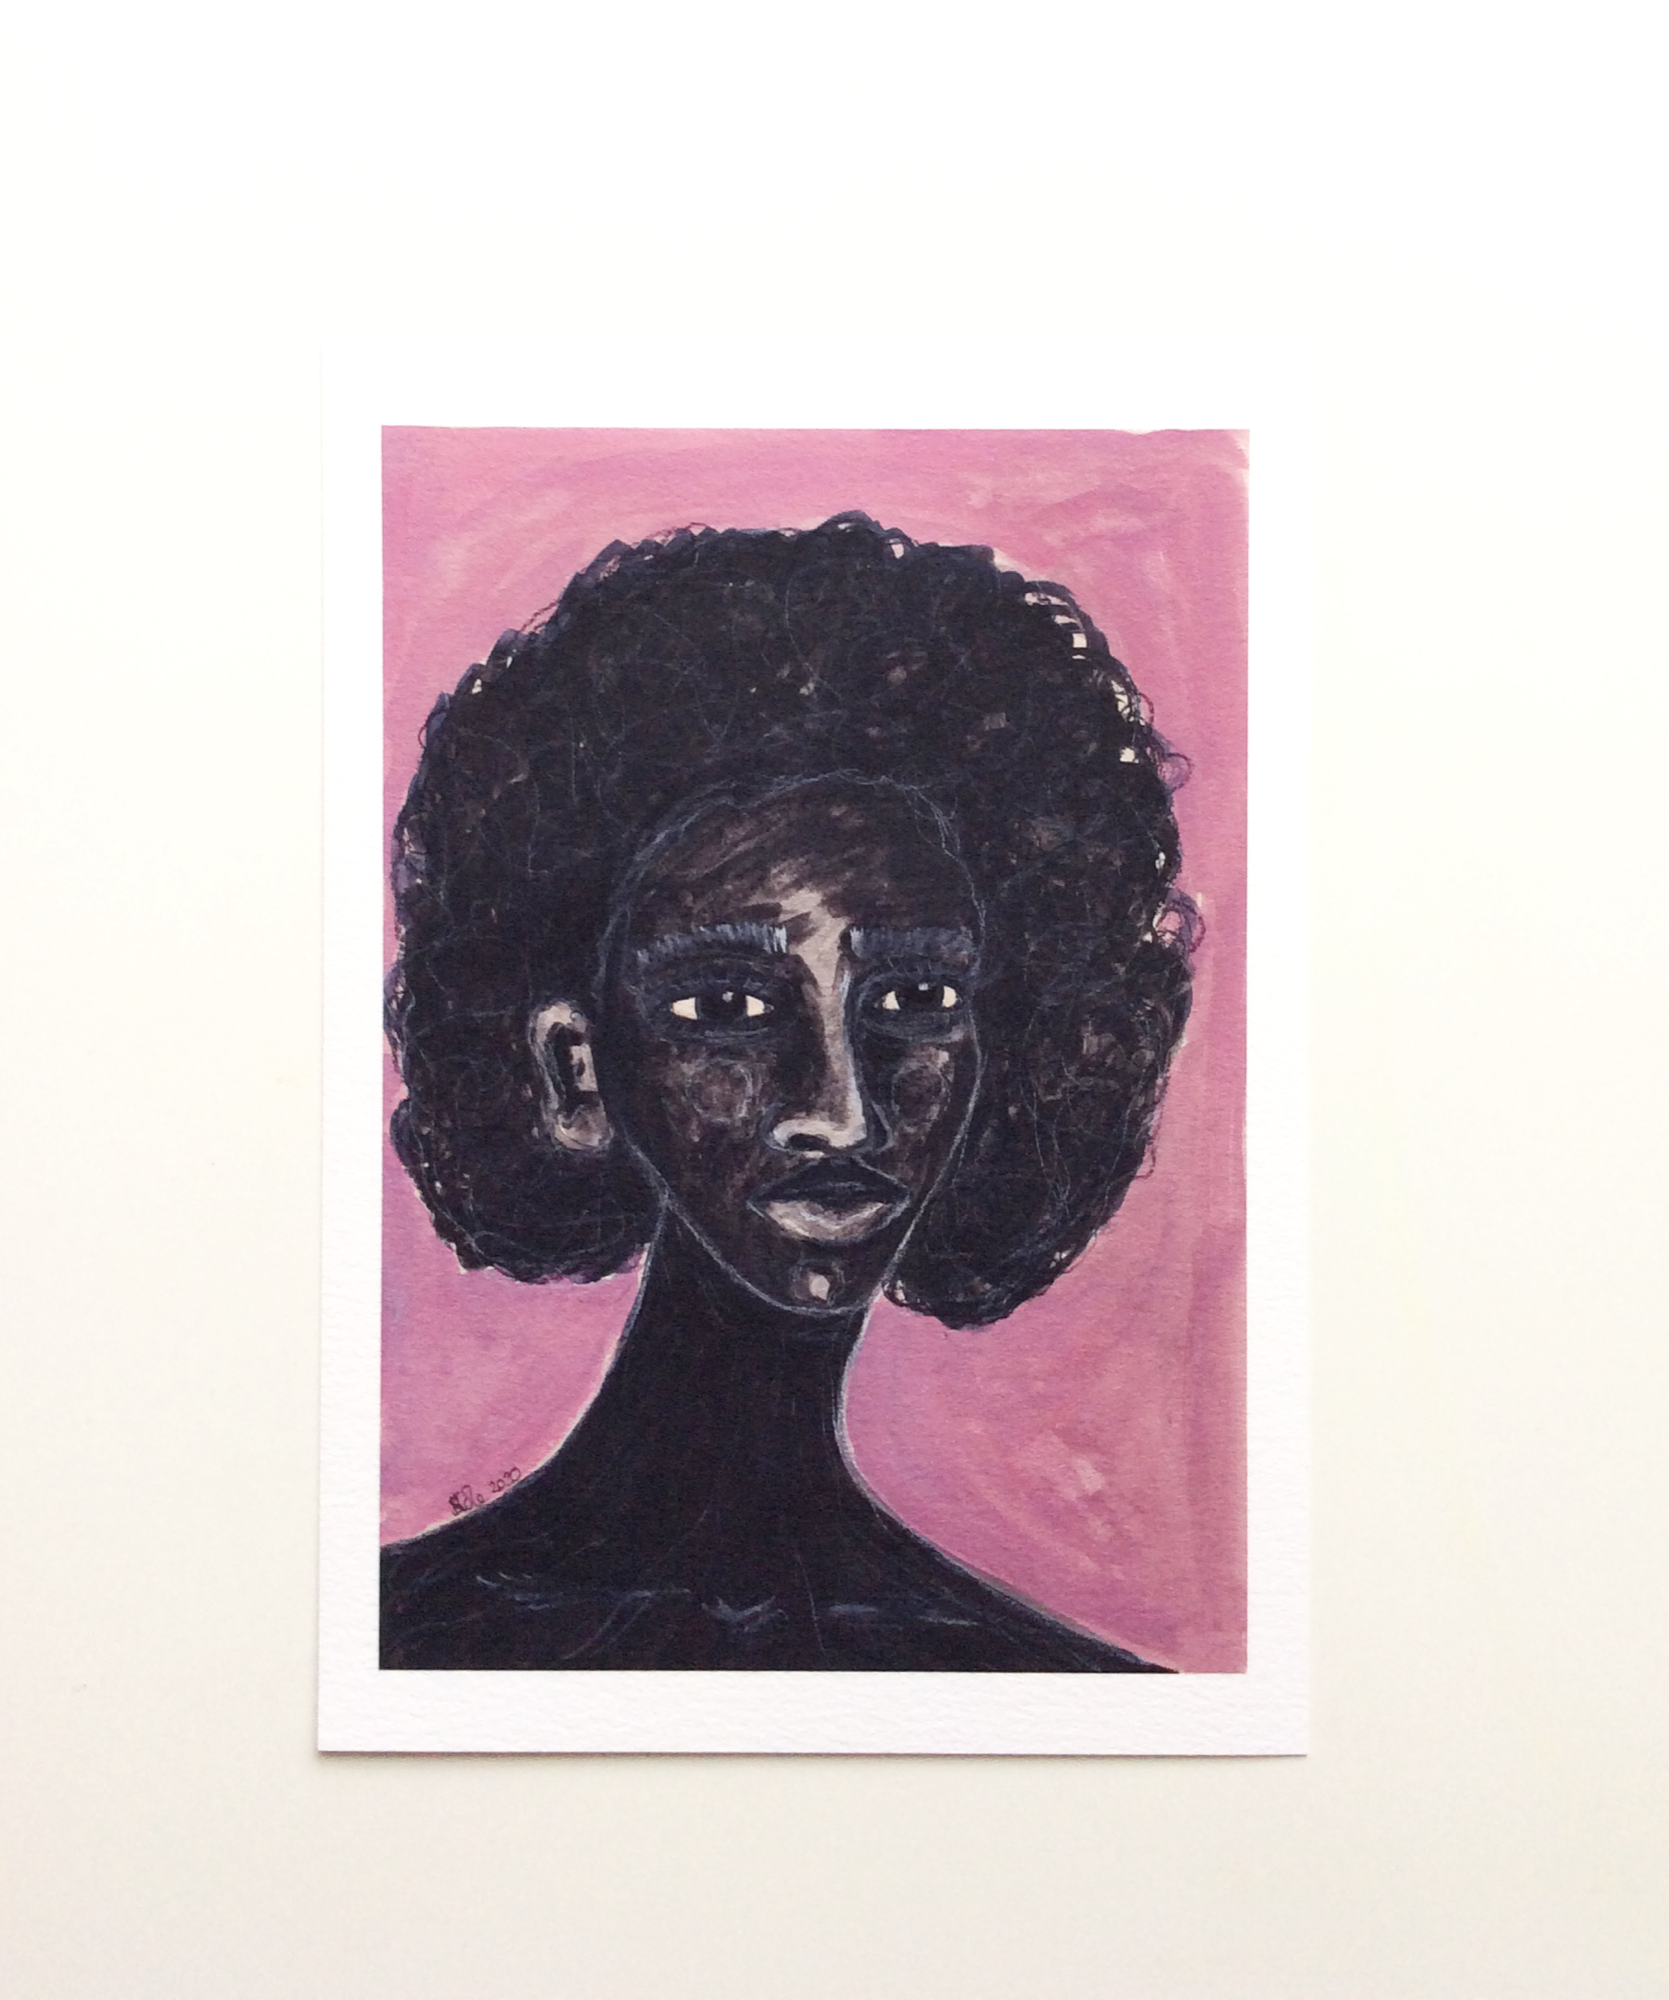 Black Woman Artwork print called 'Stronger Now' by Stacey-Ann Cole